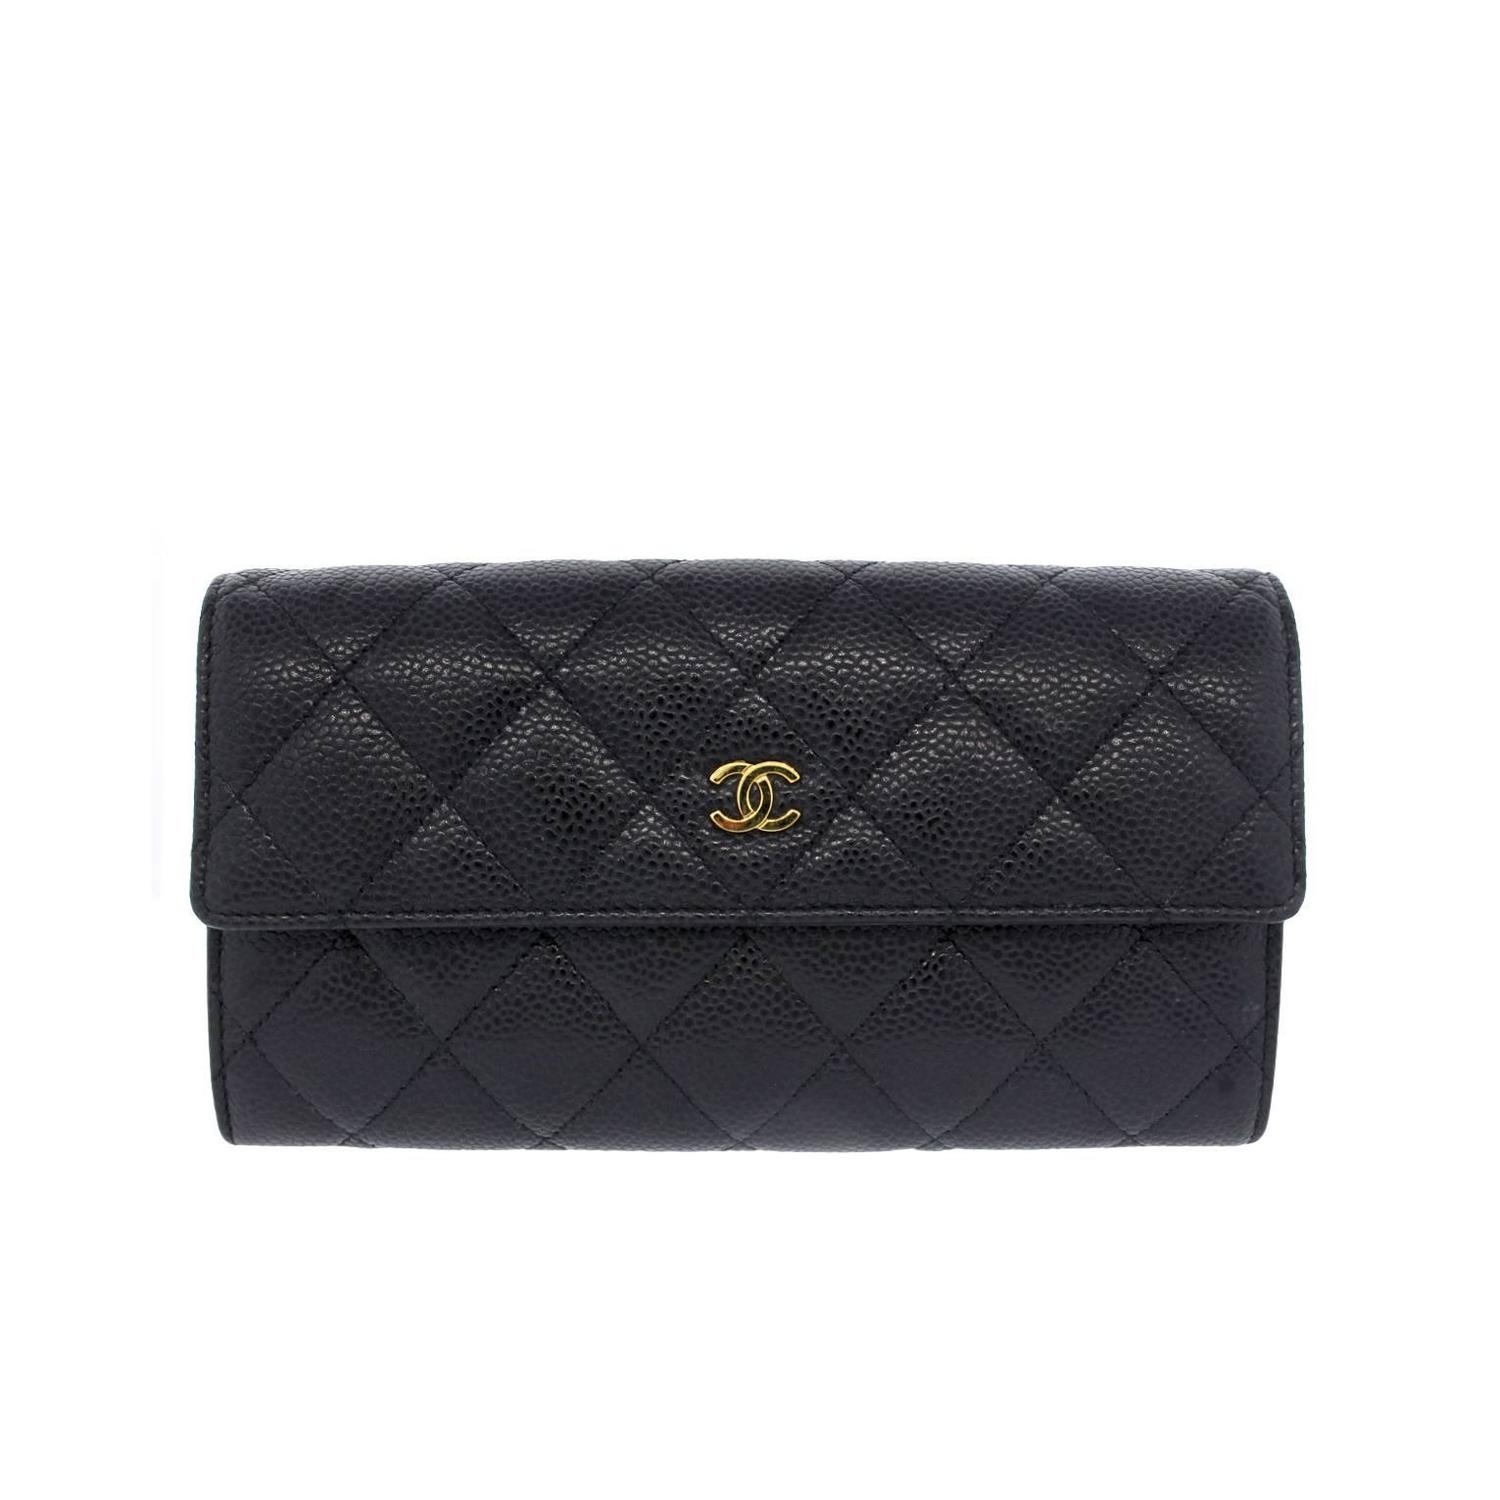 538ff42f5eafcf Chanel Black Caviar GHW Snap Wallet in Box at 1stdibs